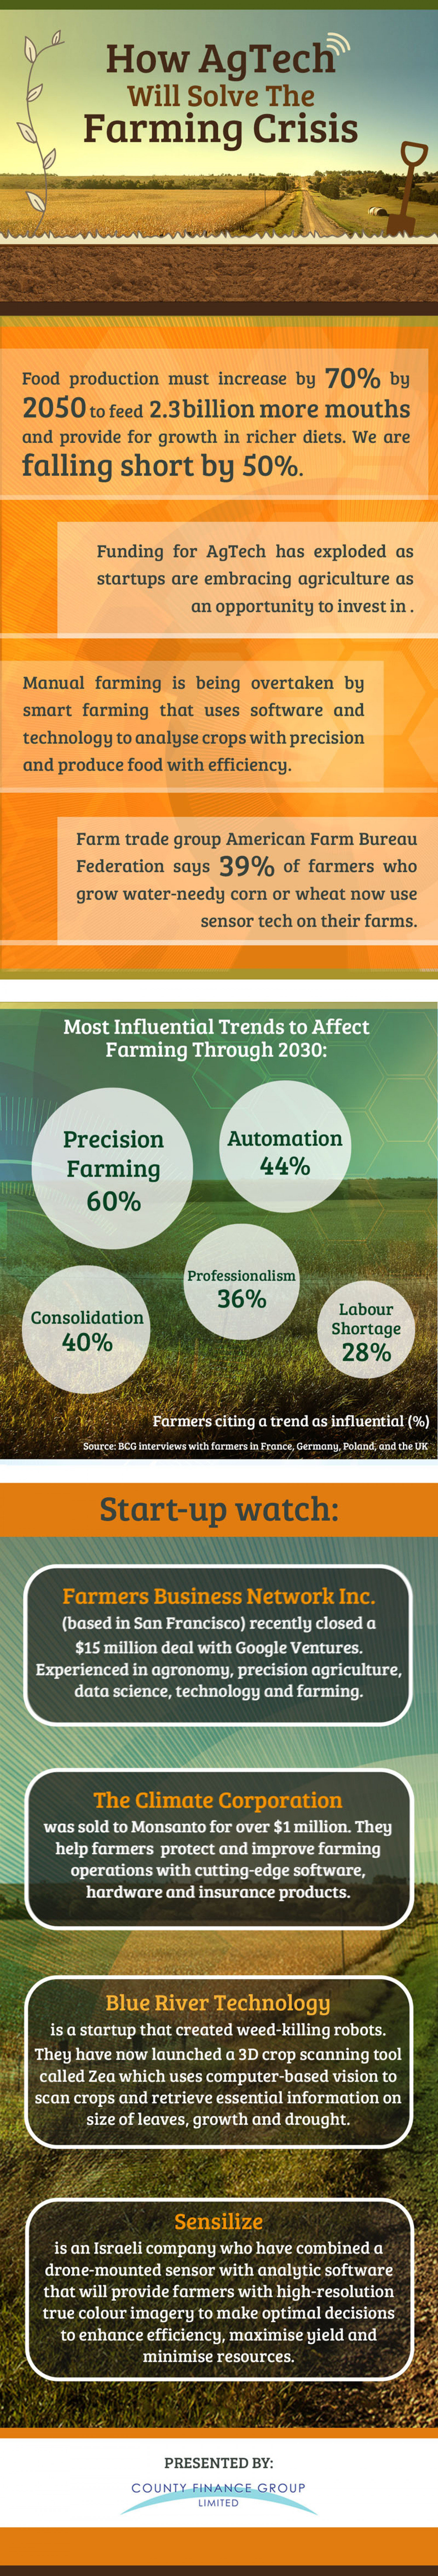 How Agtech Will Solve the Farming Crisis Infographic